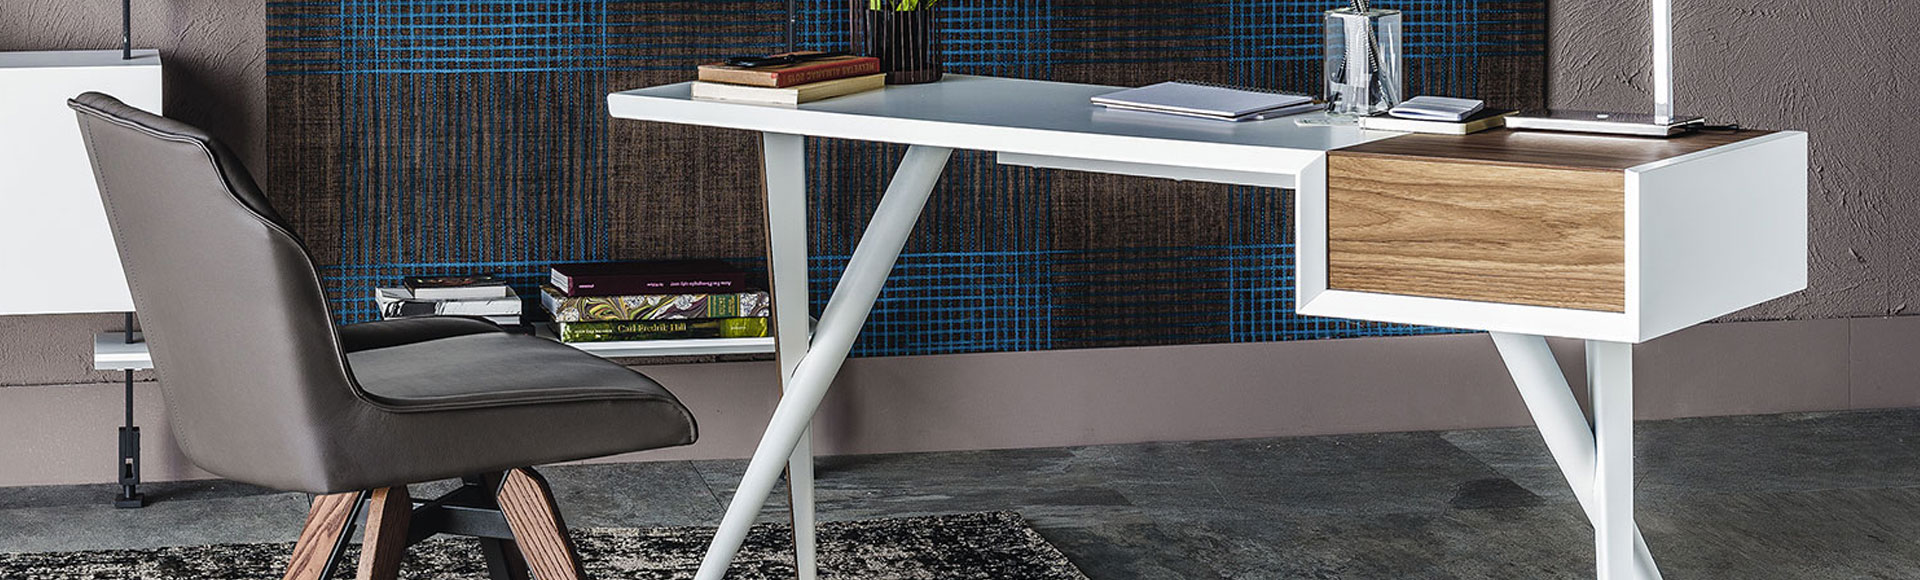 Modern Design Study Table at IDUS Furniture Store